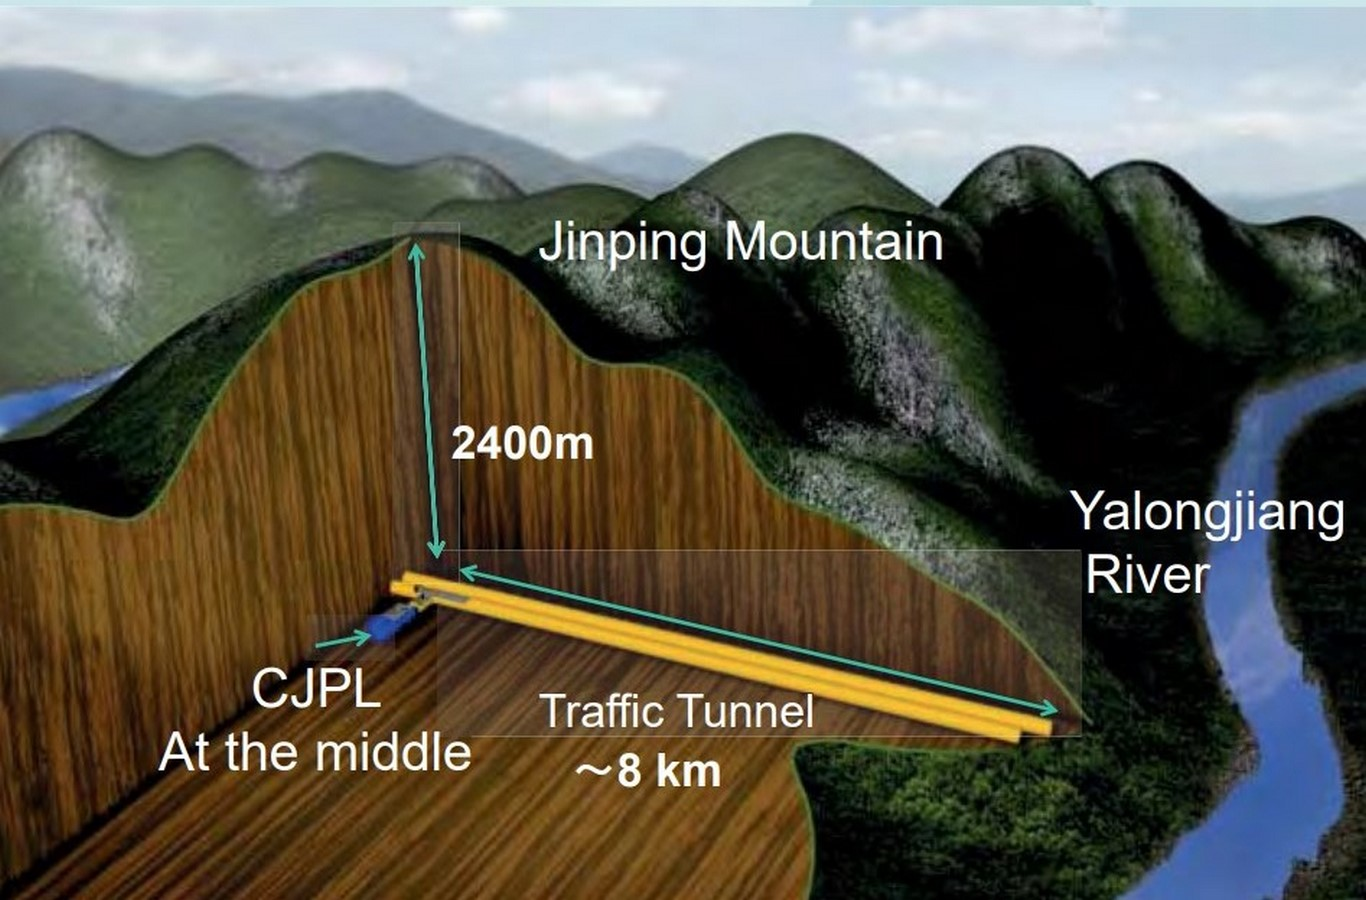 A Jinping Underground Laboratory China The world deepest underground laboratory Image